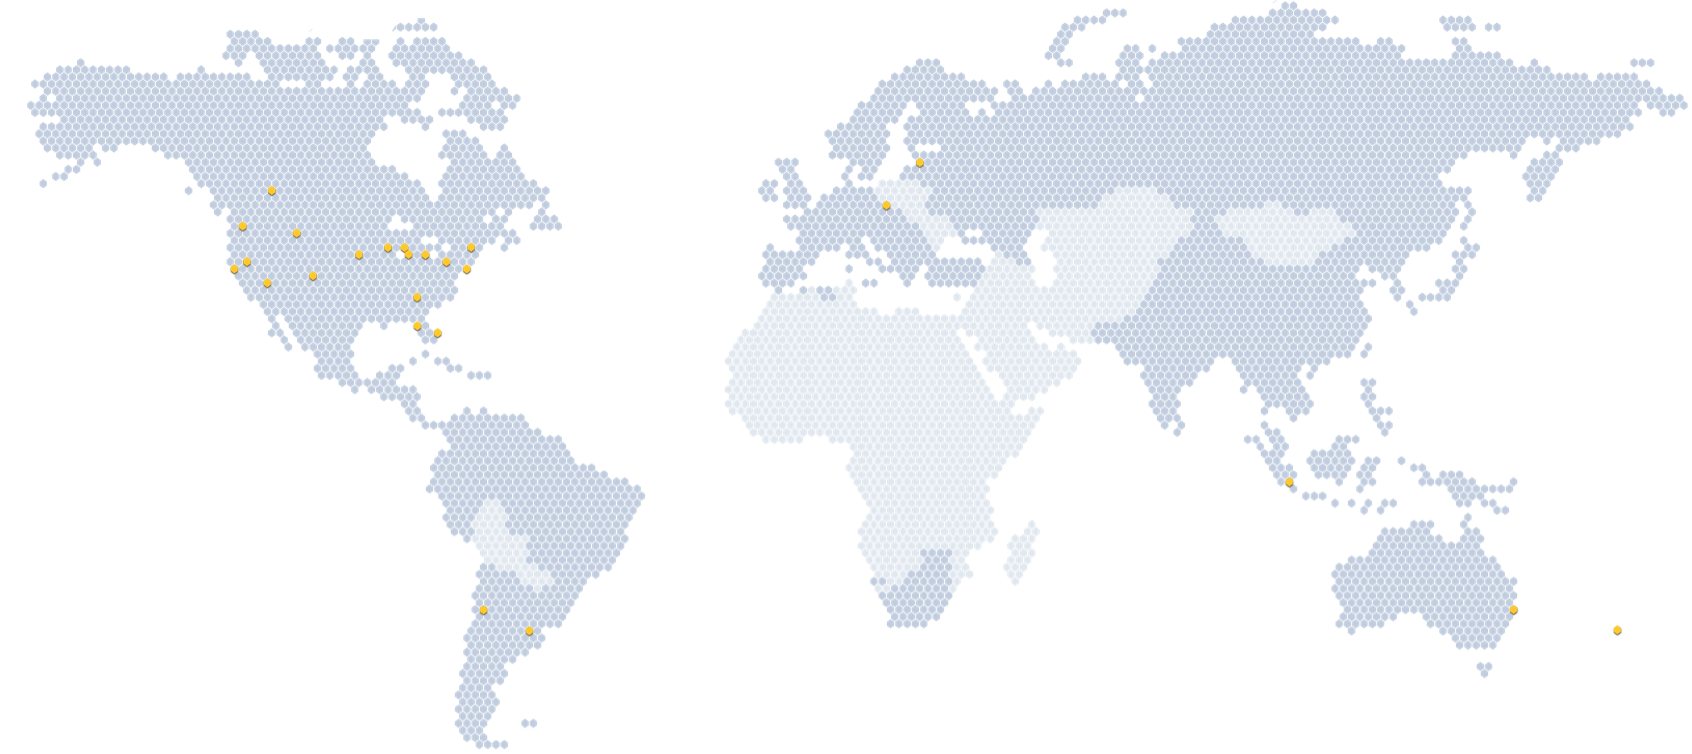 Mercator Projection world map dotted with yellow and grey hexagons indicating Care Mobile program locations in the regions serviced